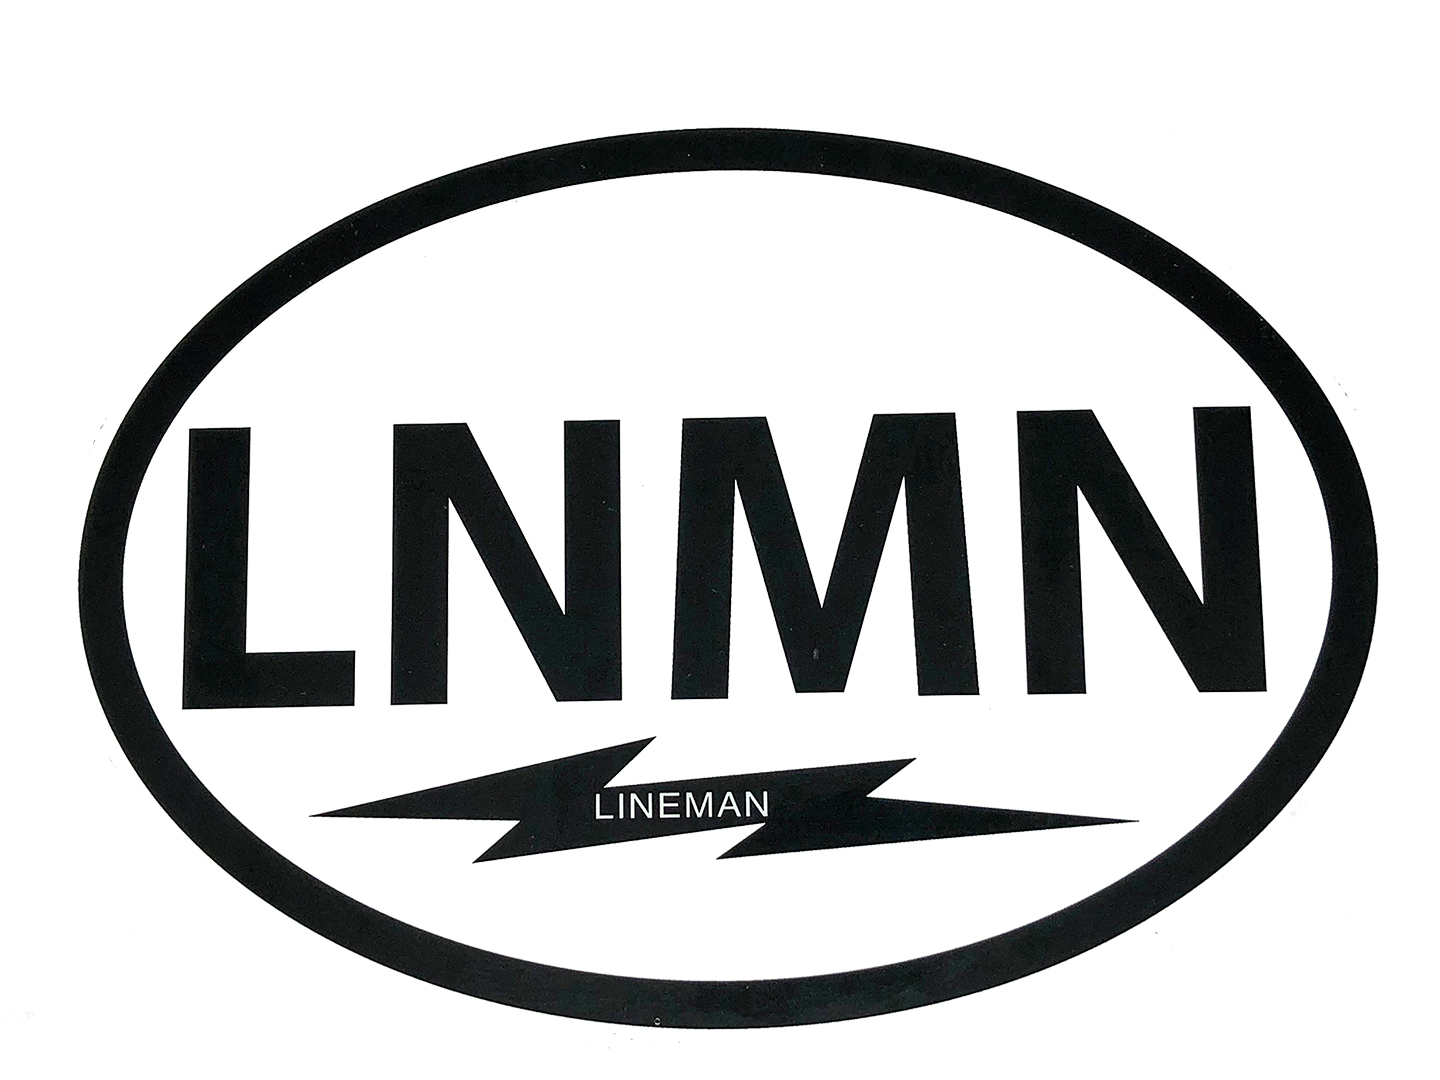 BUMPER STICKER LNMN OVAL BLACK ON WHITE VINYL 5-1/8